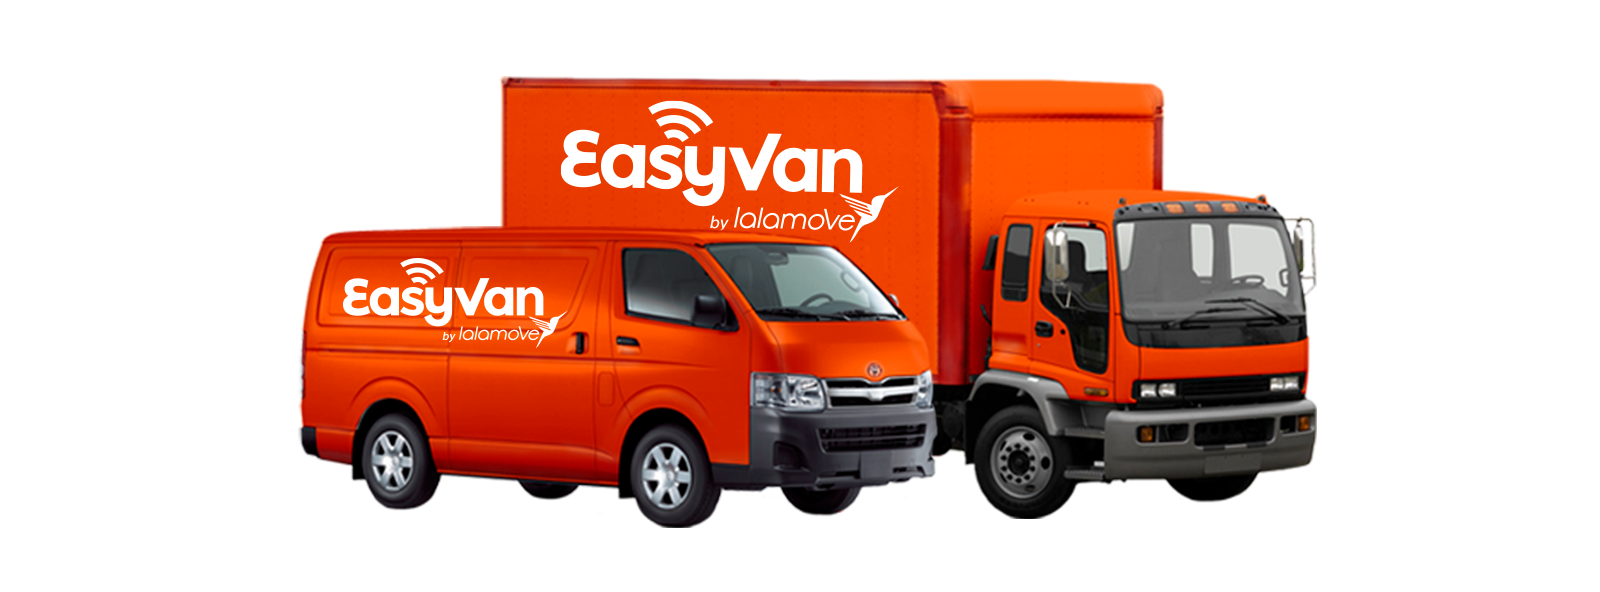 EV_All-in-One_Van-Truck.png